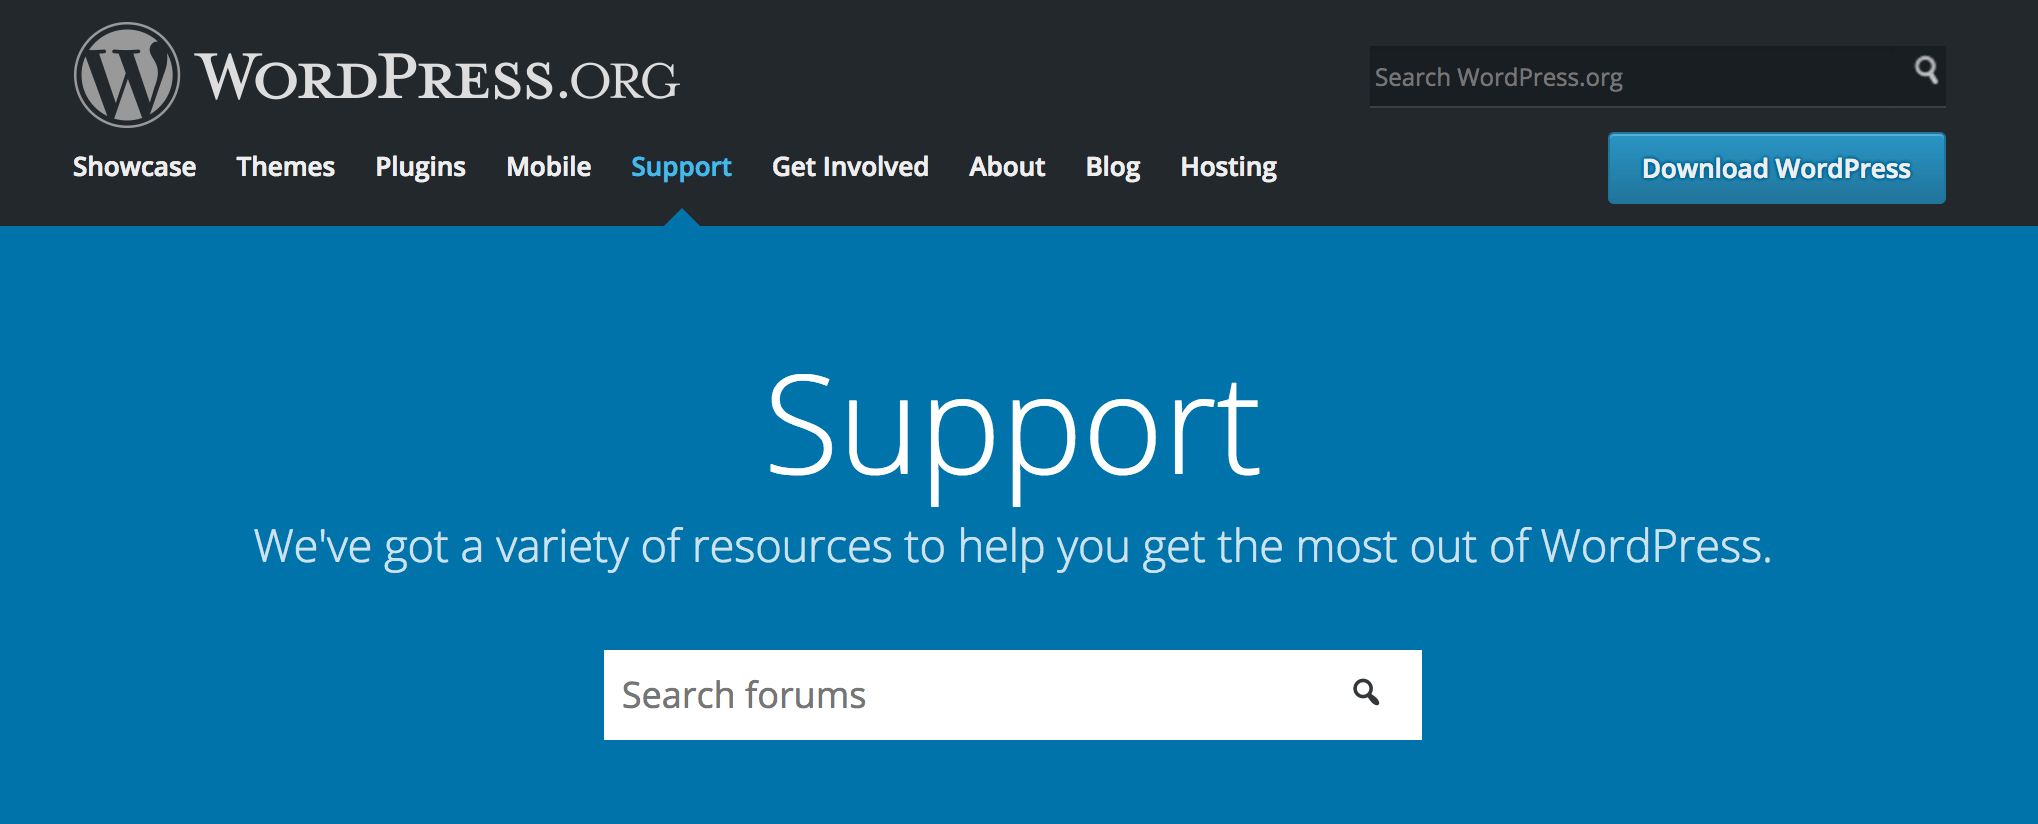 wordpress.org support knowledge base